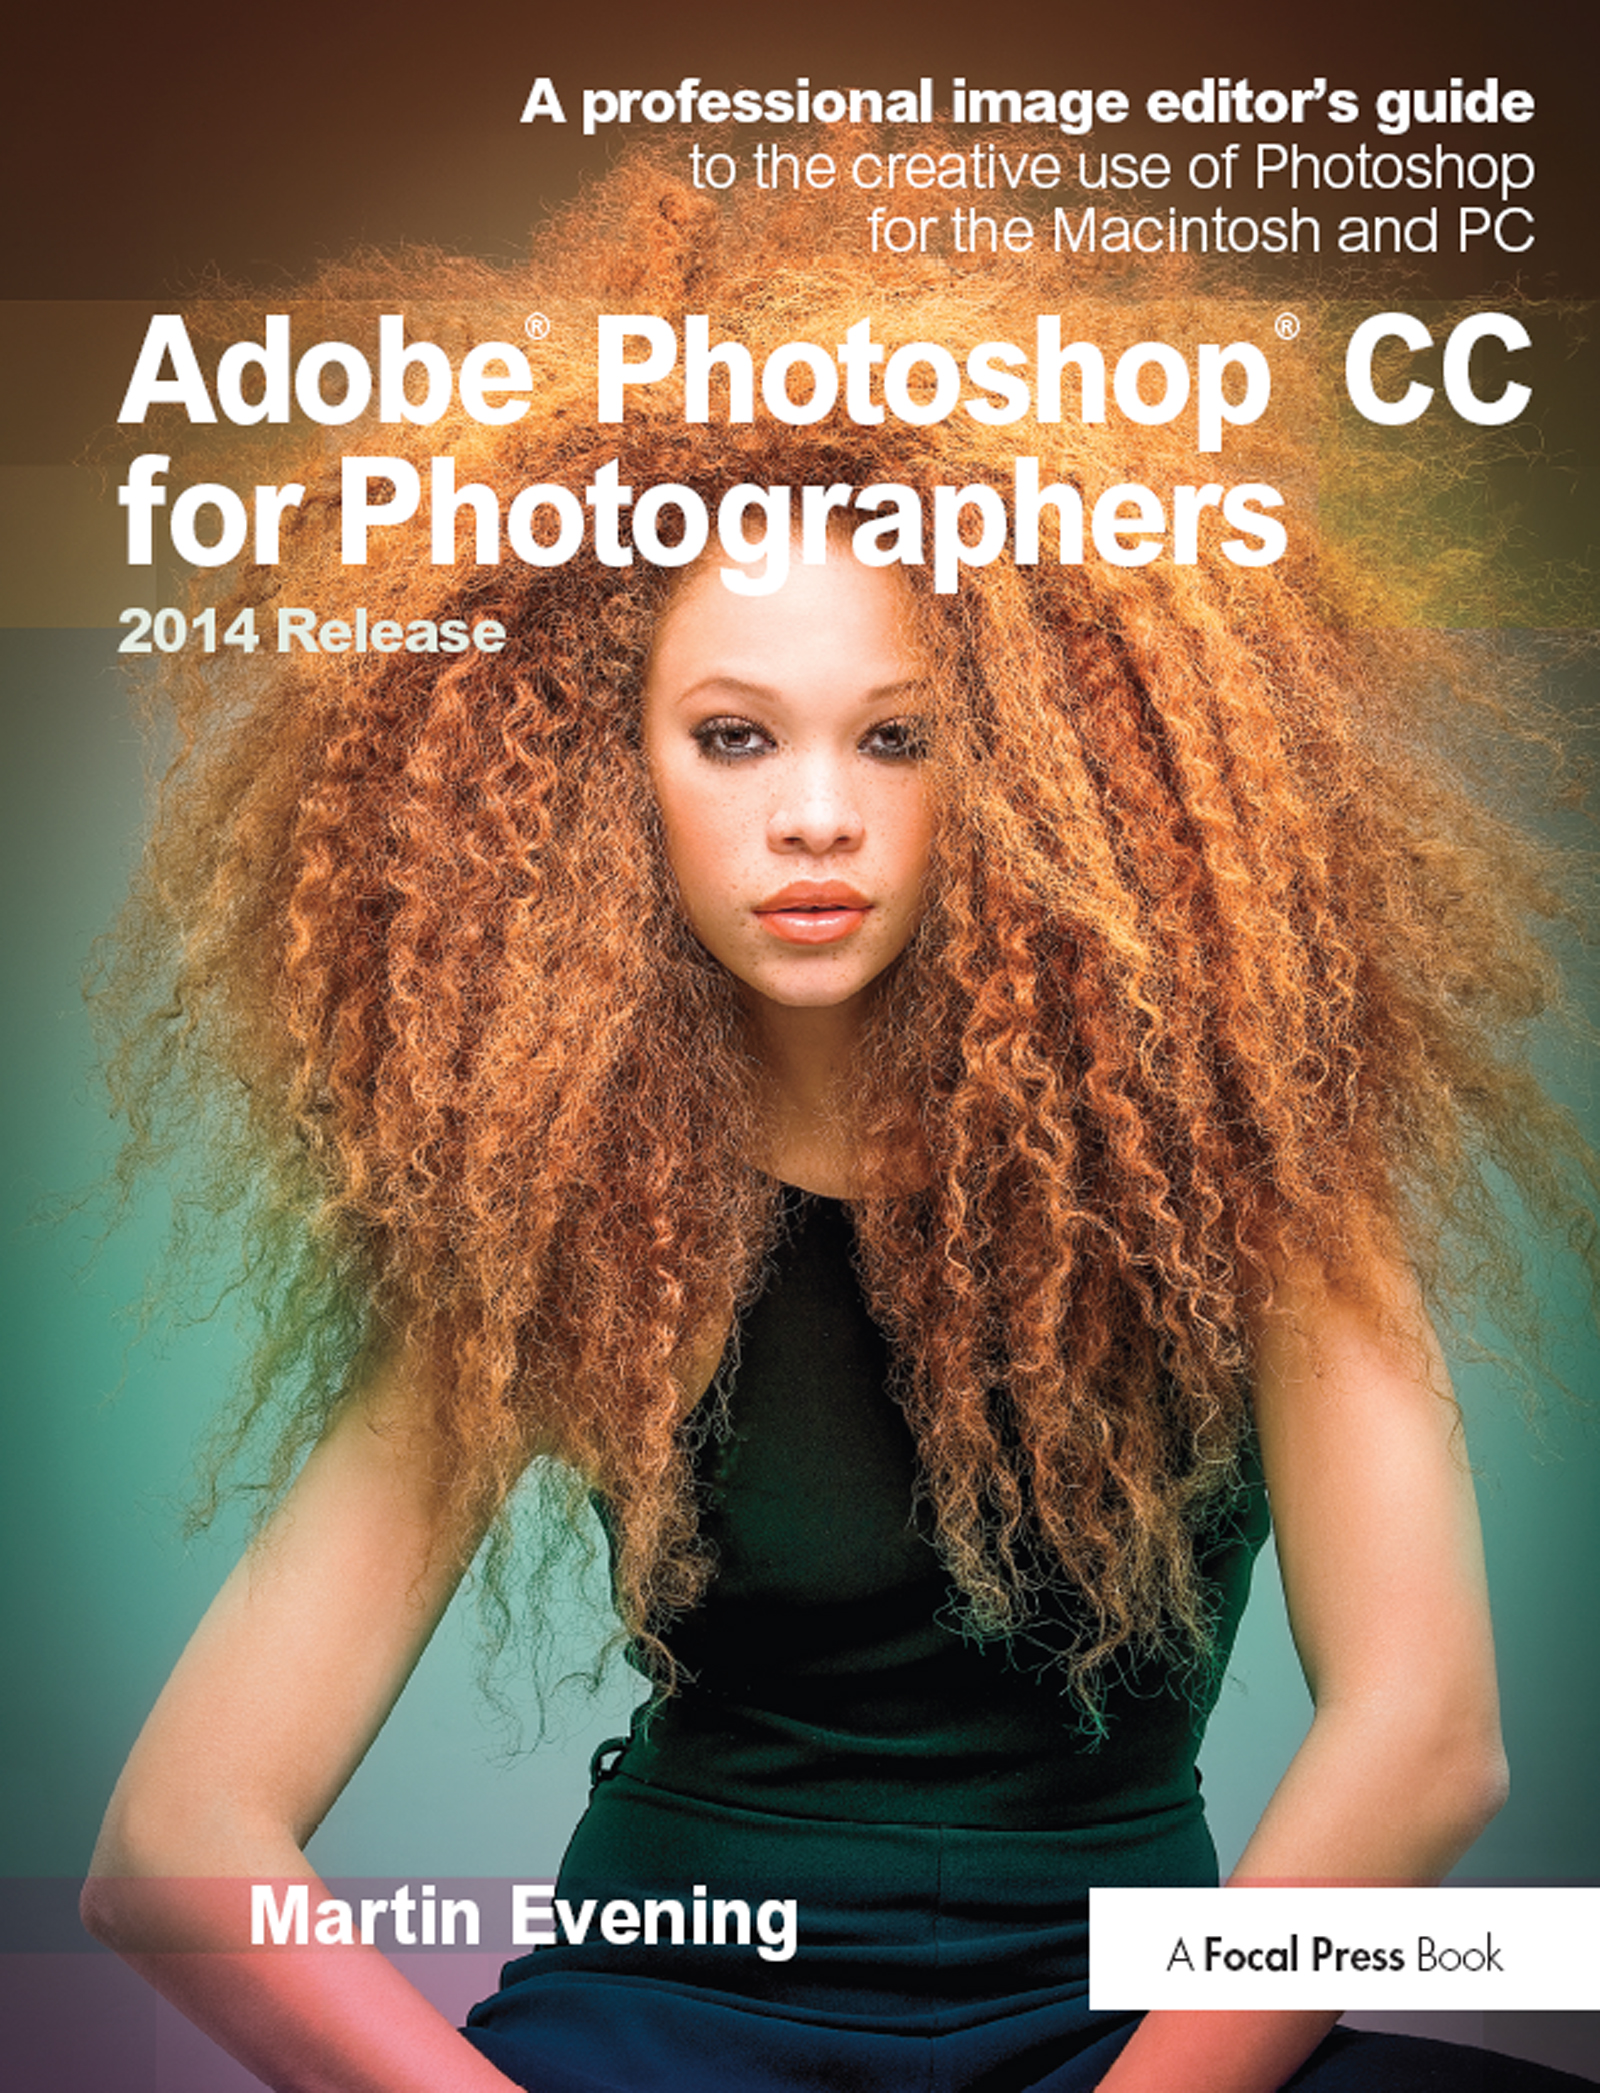 Adobe Photoshop CC for Photographers, 2014 Release: A professional image editor's guide to the creative use of Photoshop for the Macintosh and PC, 2nd Edition (Paperback) book cover